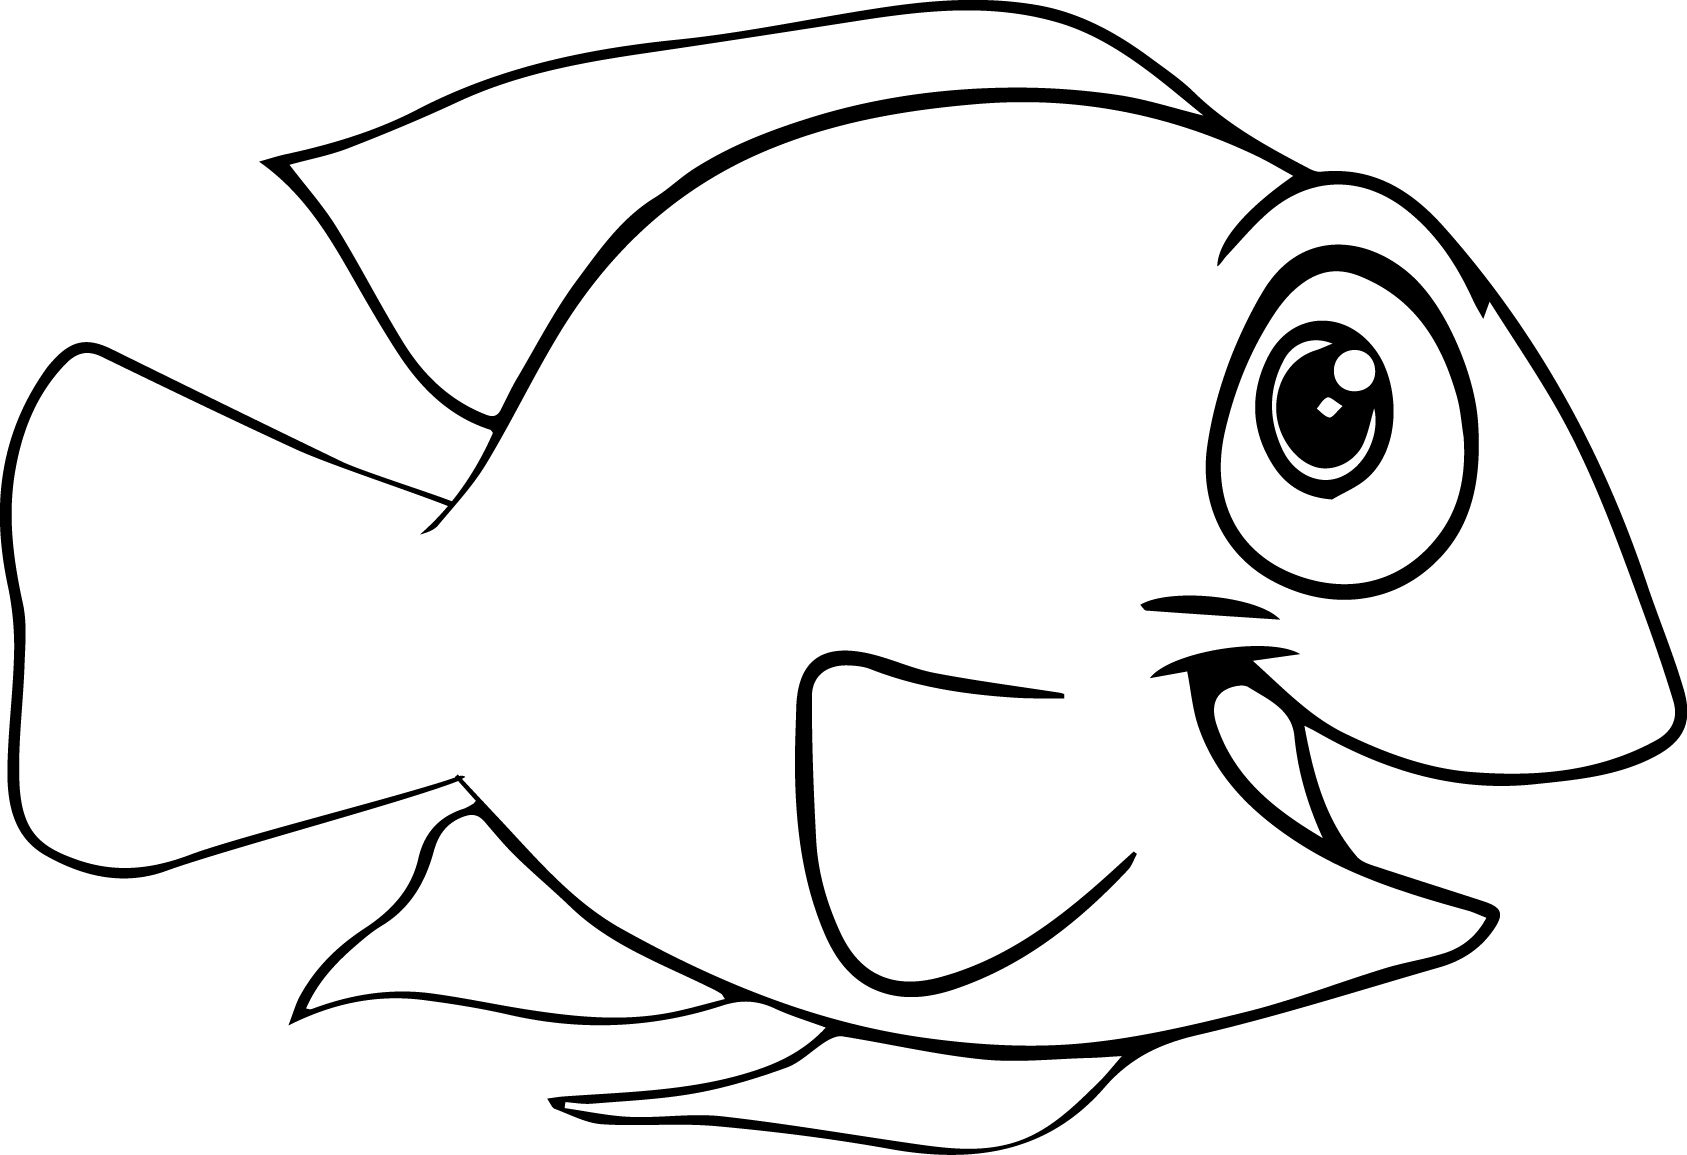 coloring pages cartoon fish - photo#6